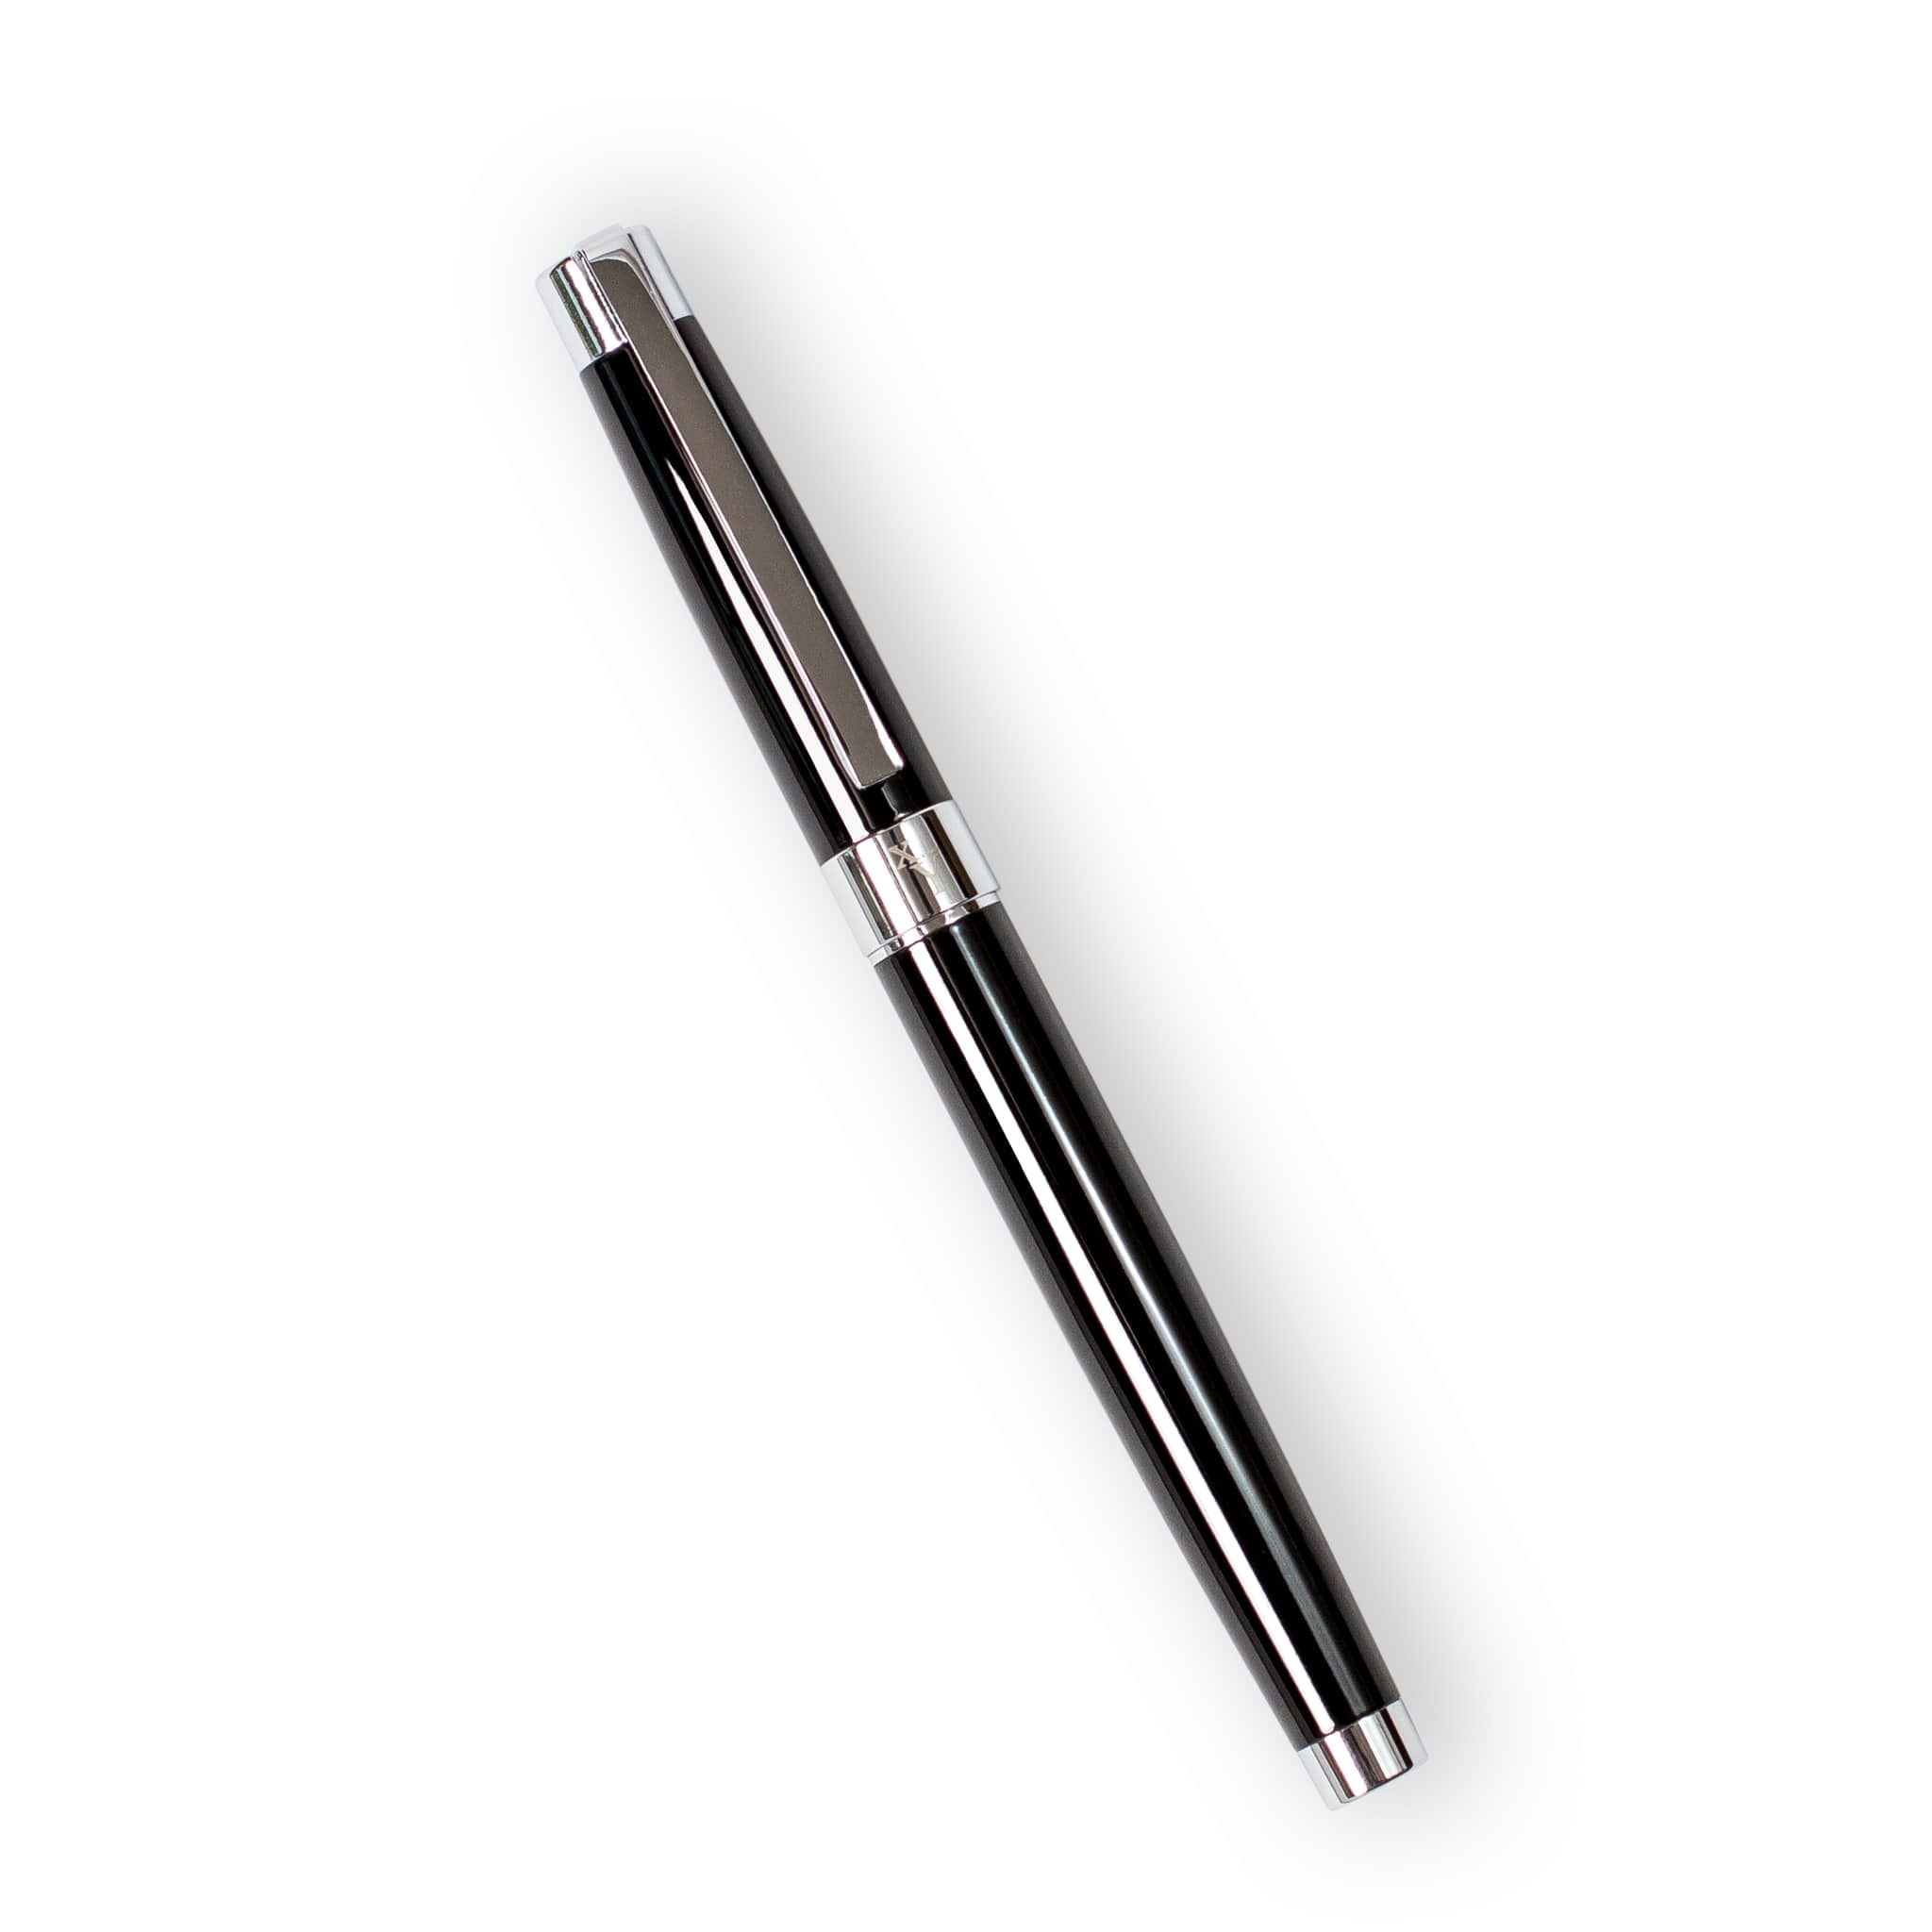 Signature Edition Luxury Pen - Intense Black - Free Shipping